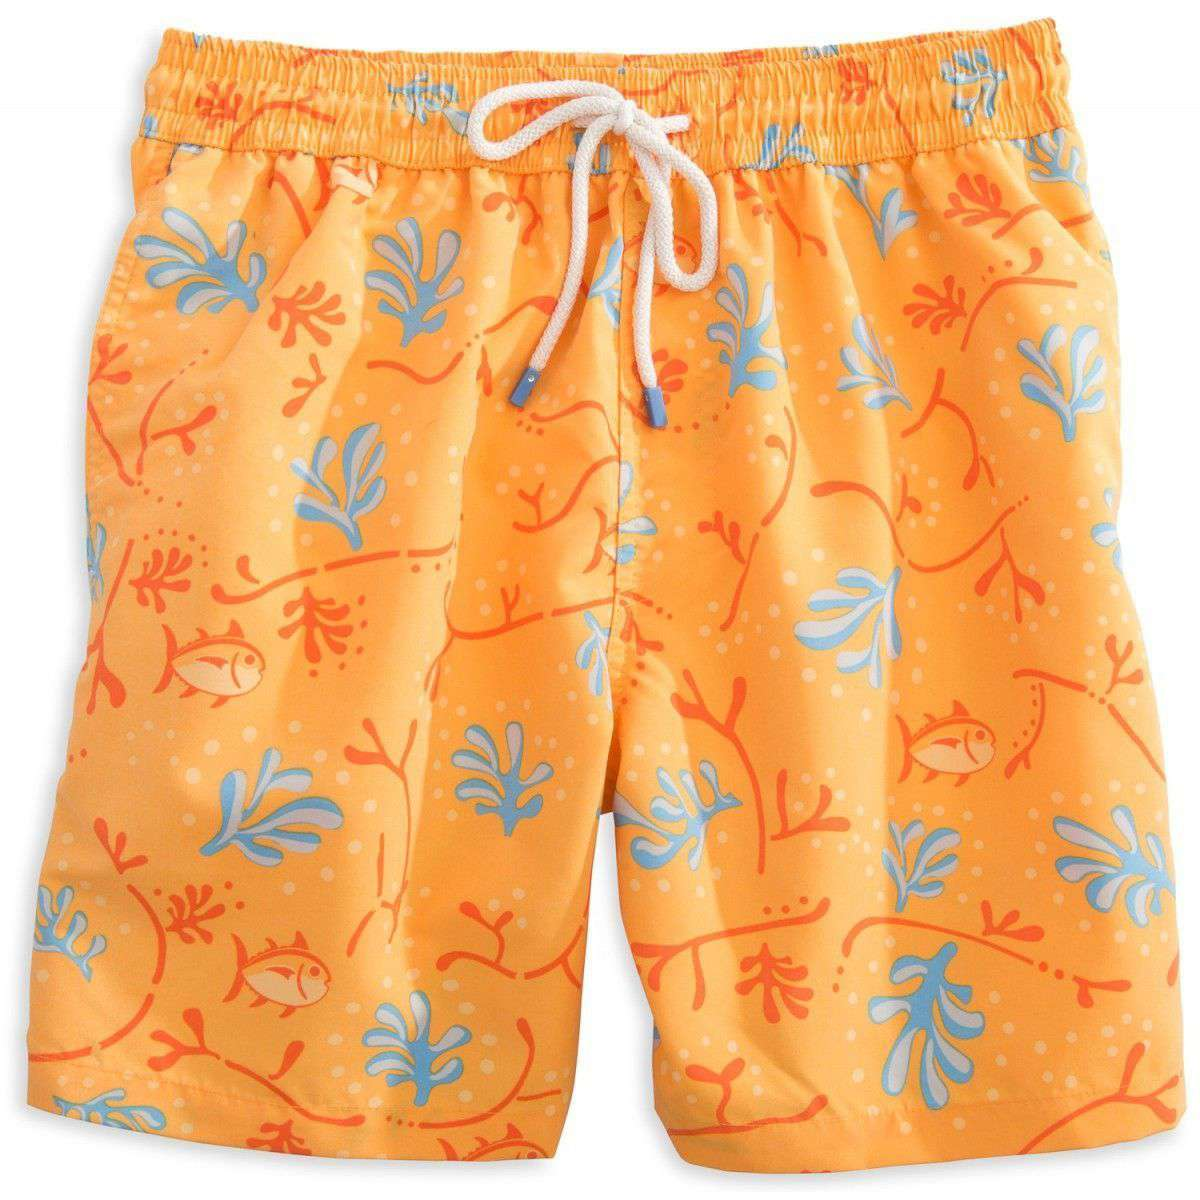 Men's Swimsuits - Skipjack Coral Swim Trunk In Orange By Southern Tide